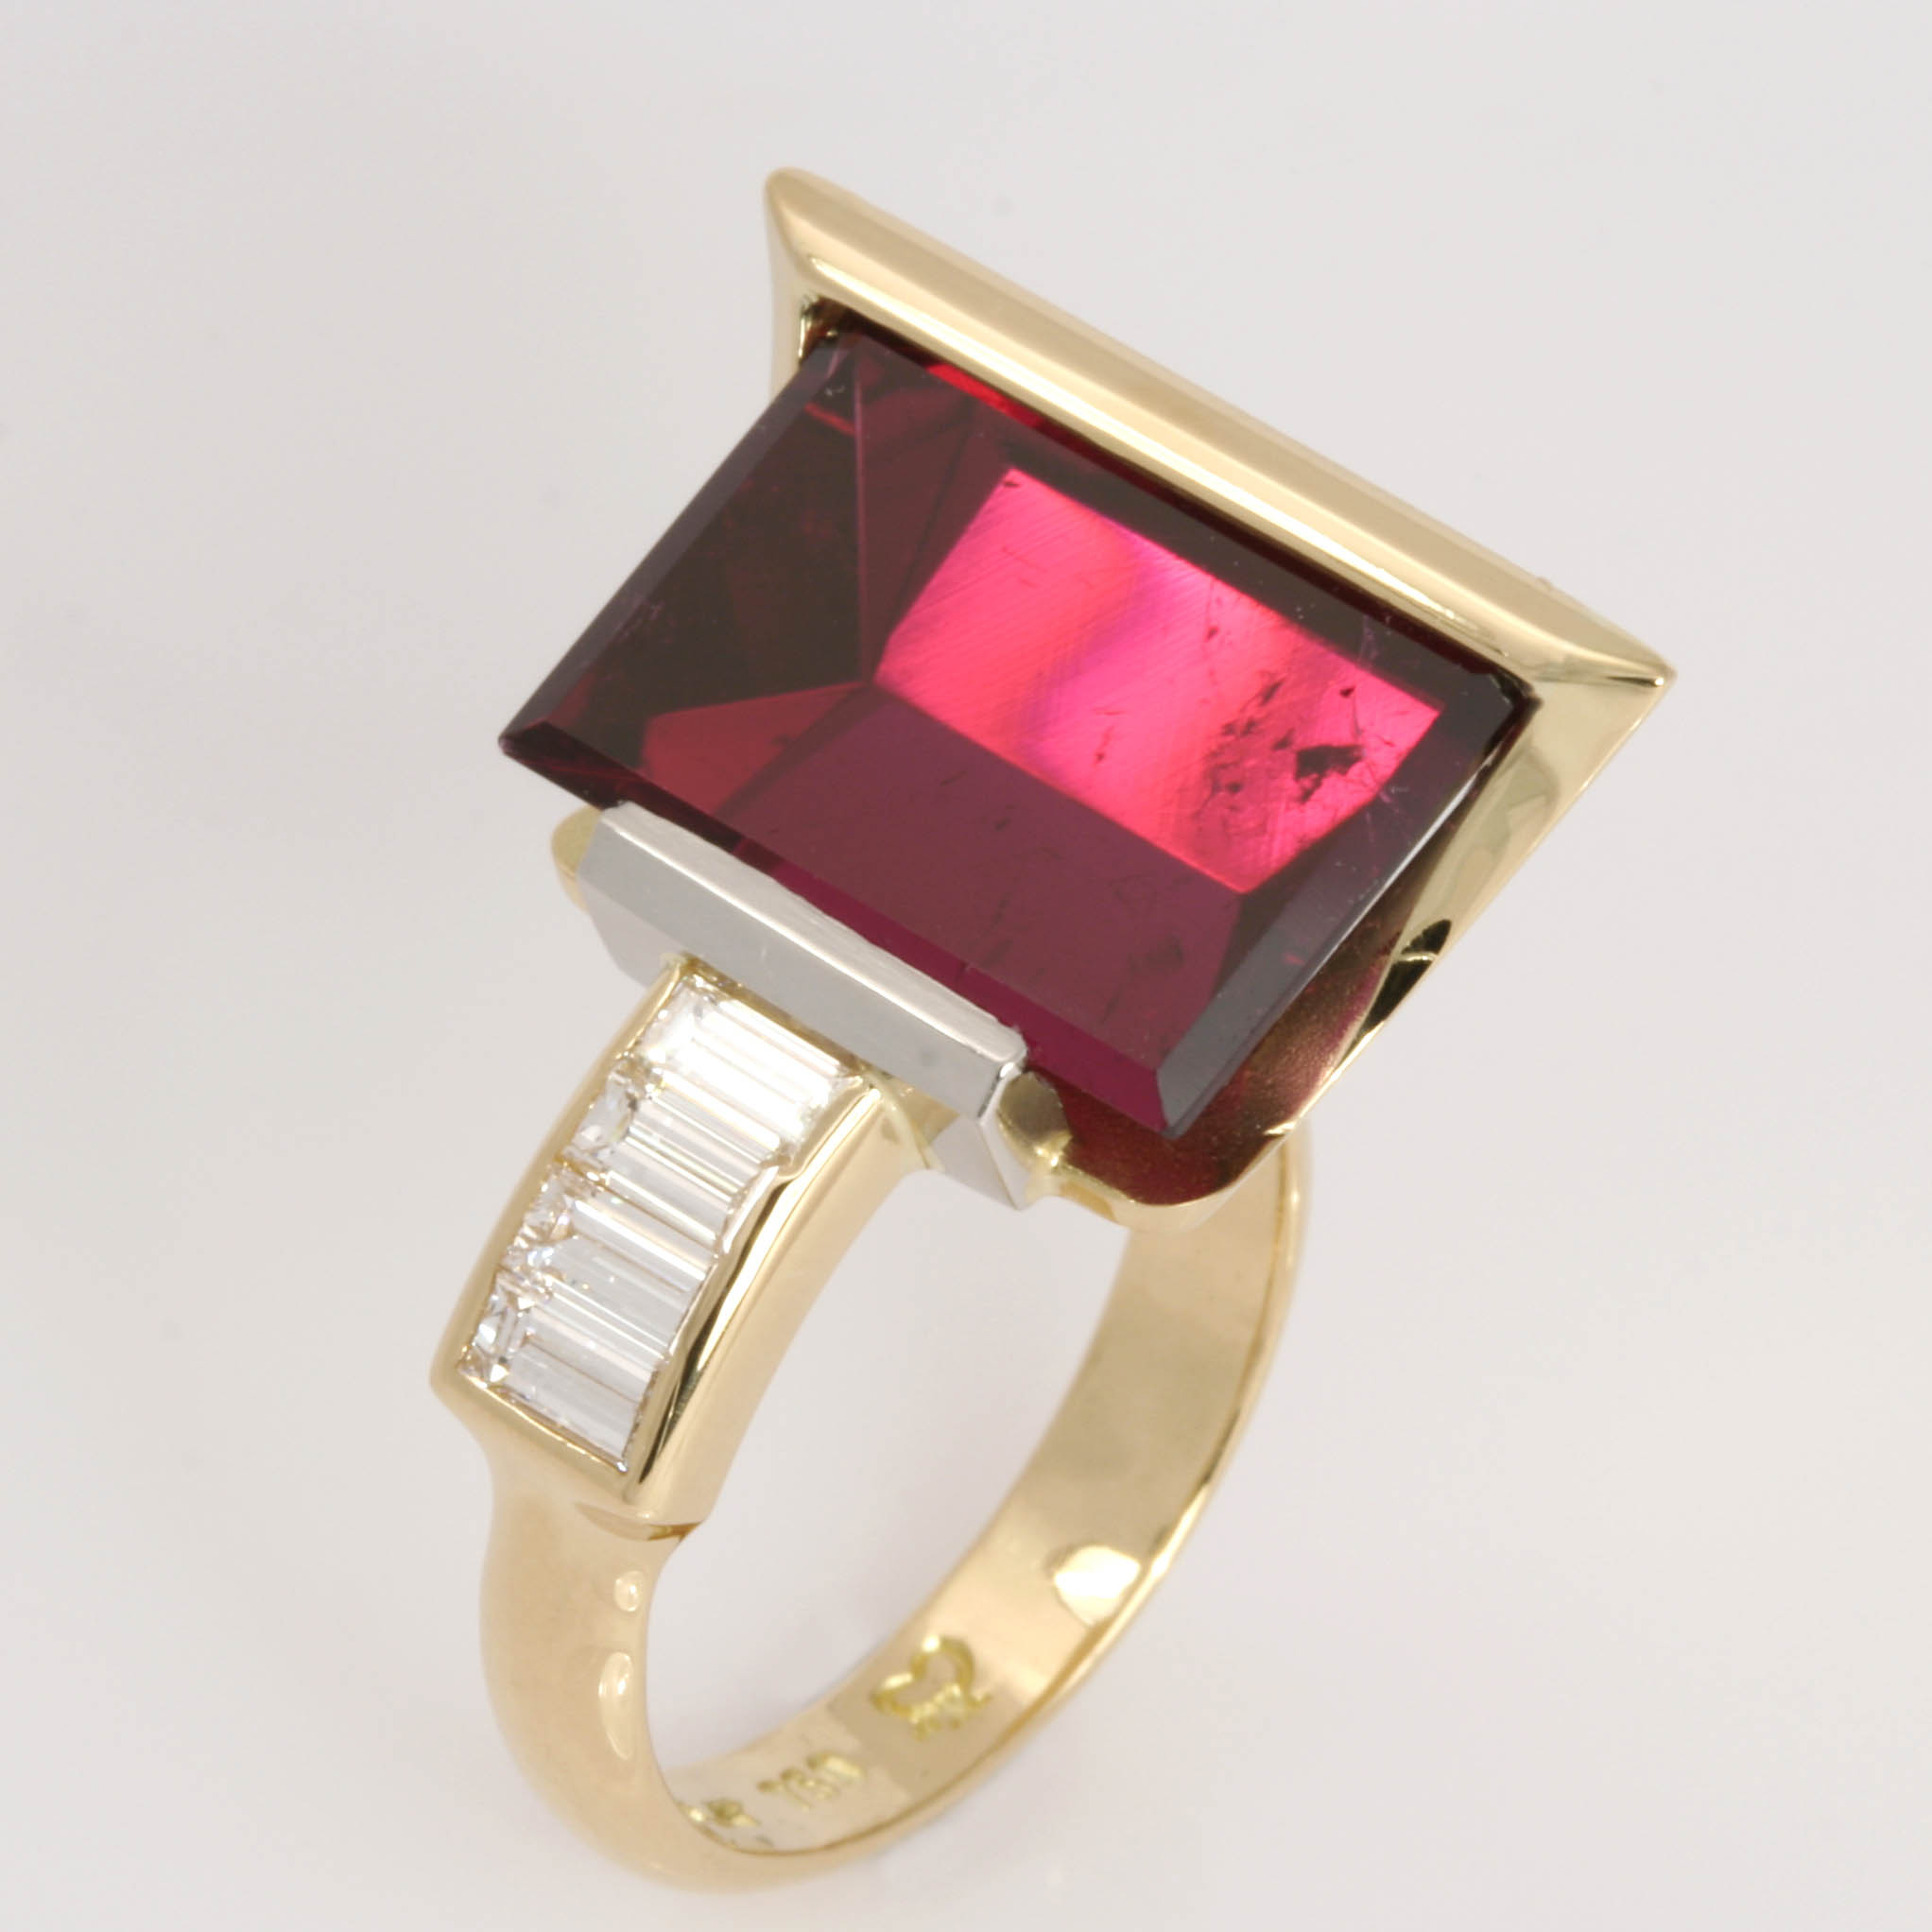 Handmade ladies 18ct yellow gold ring featuring a fancy cut rubellite tourmaline and baguette diamonds